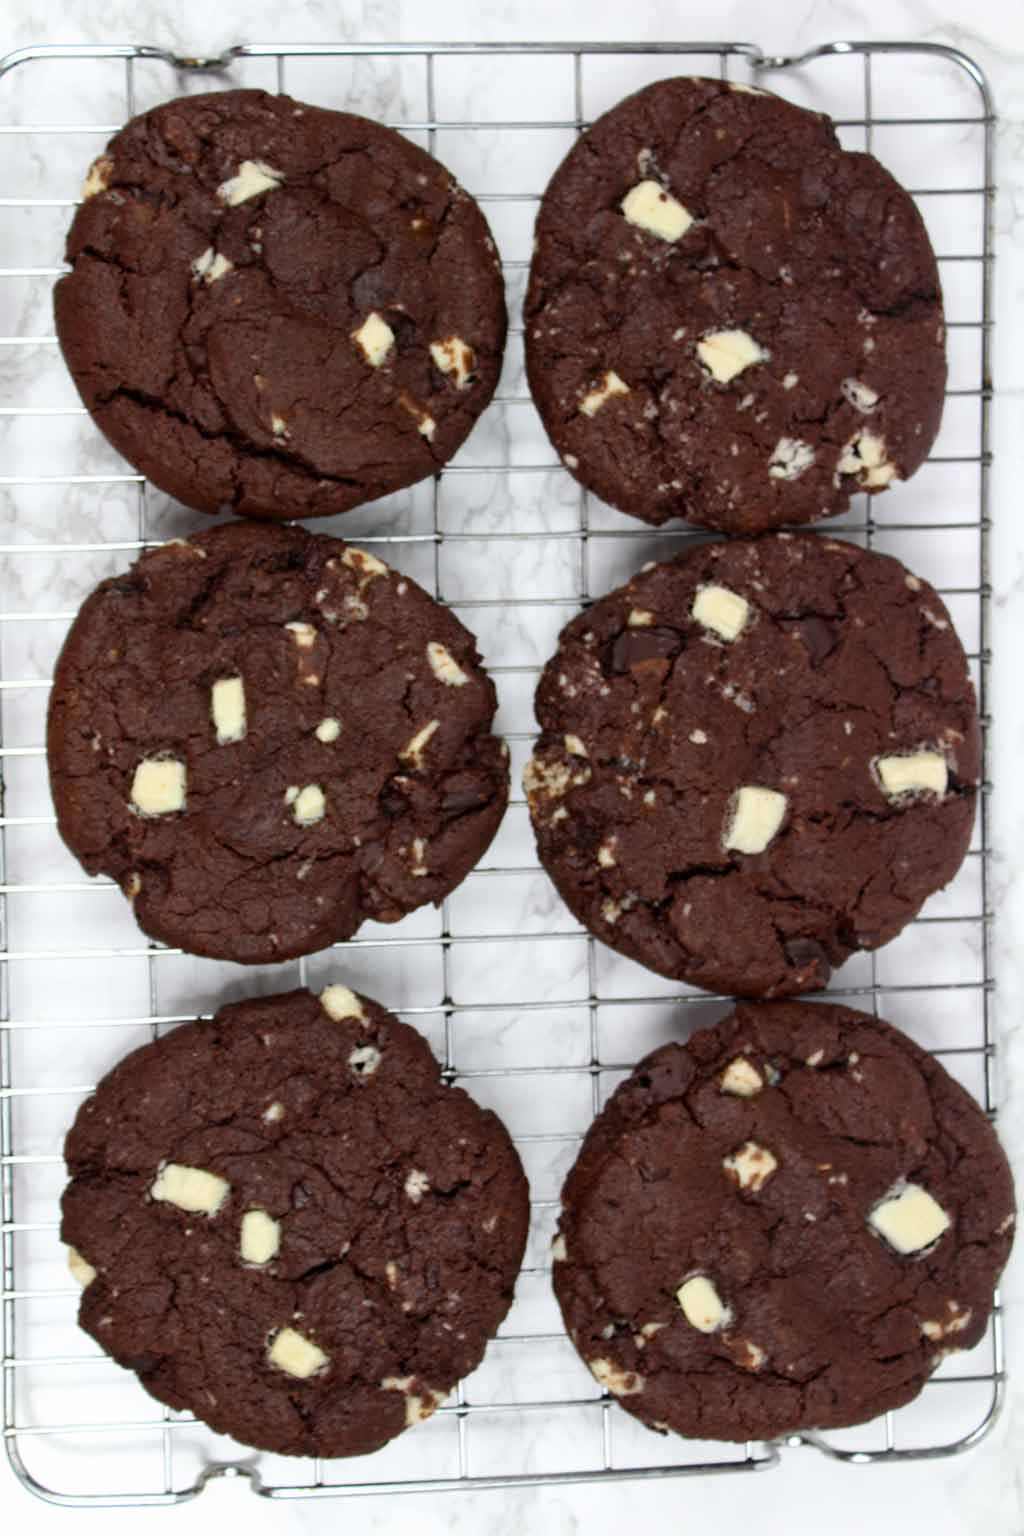 6 vegan double chocolate chip cookies on a cooling rack